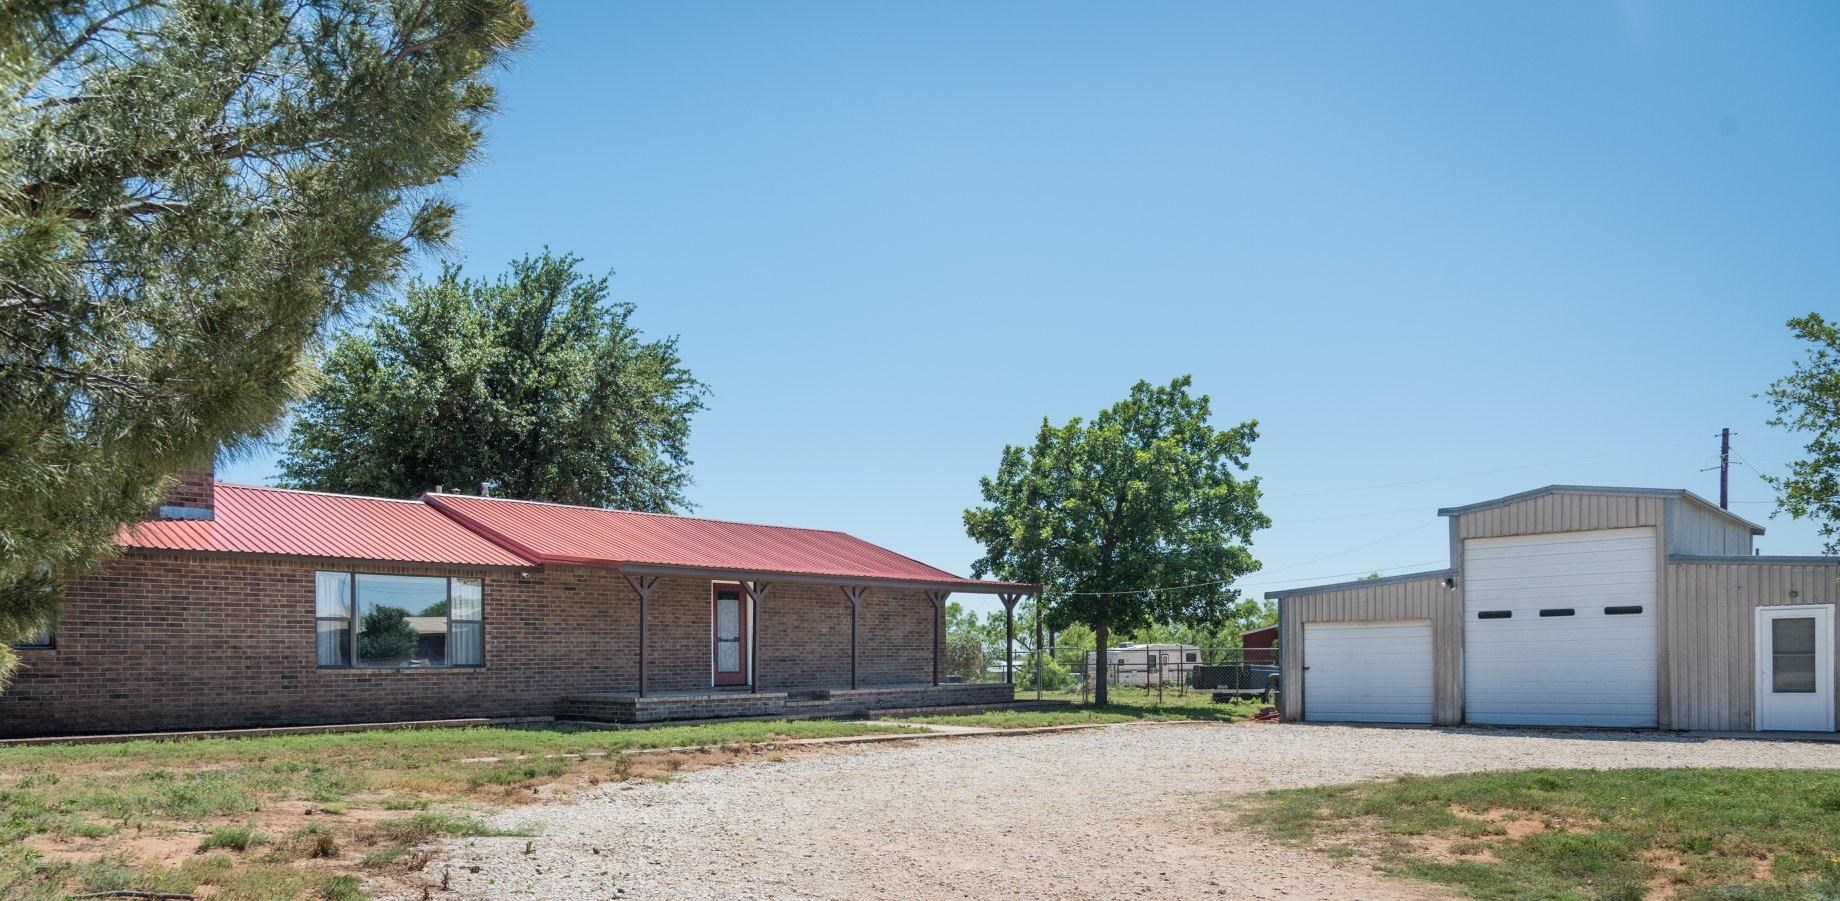 COUNTRY HOME FOR SALE IN BIG SPRING